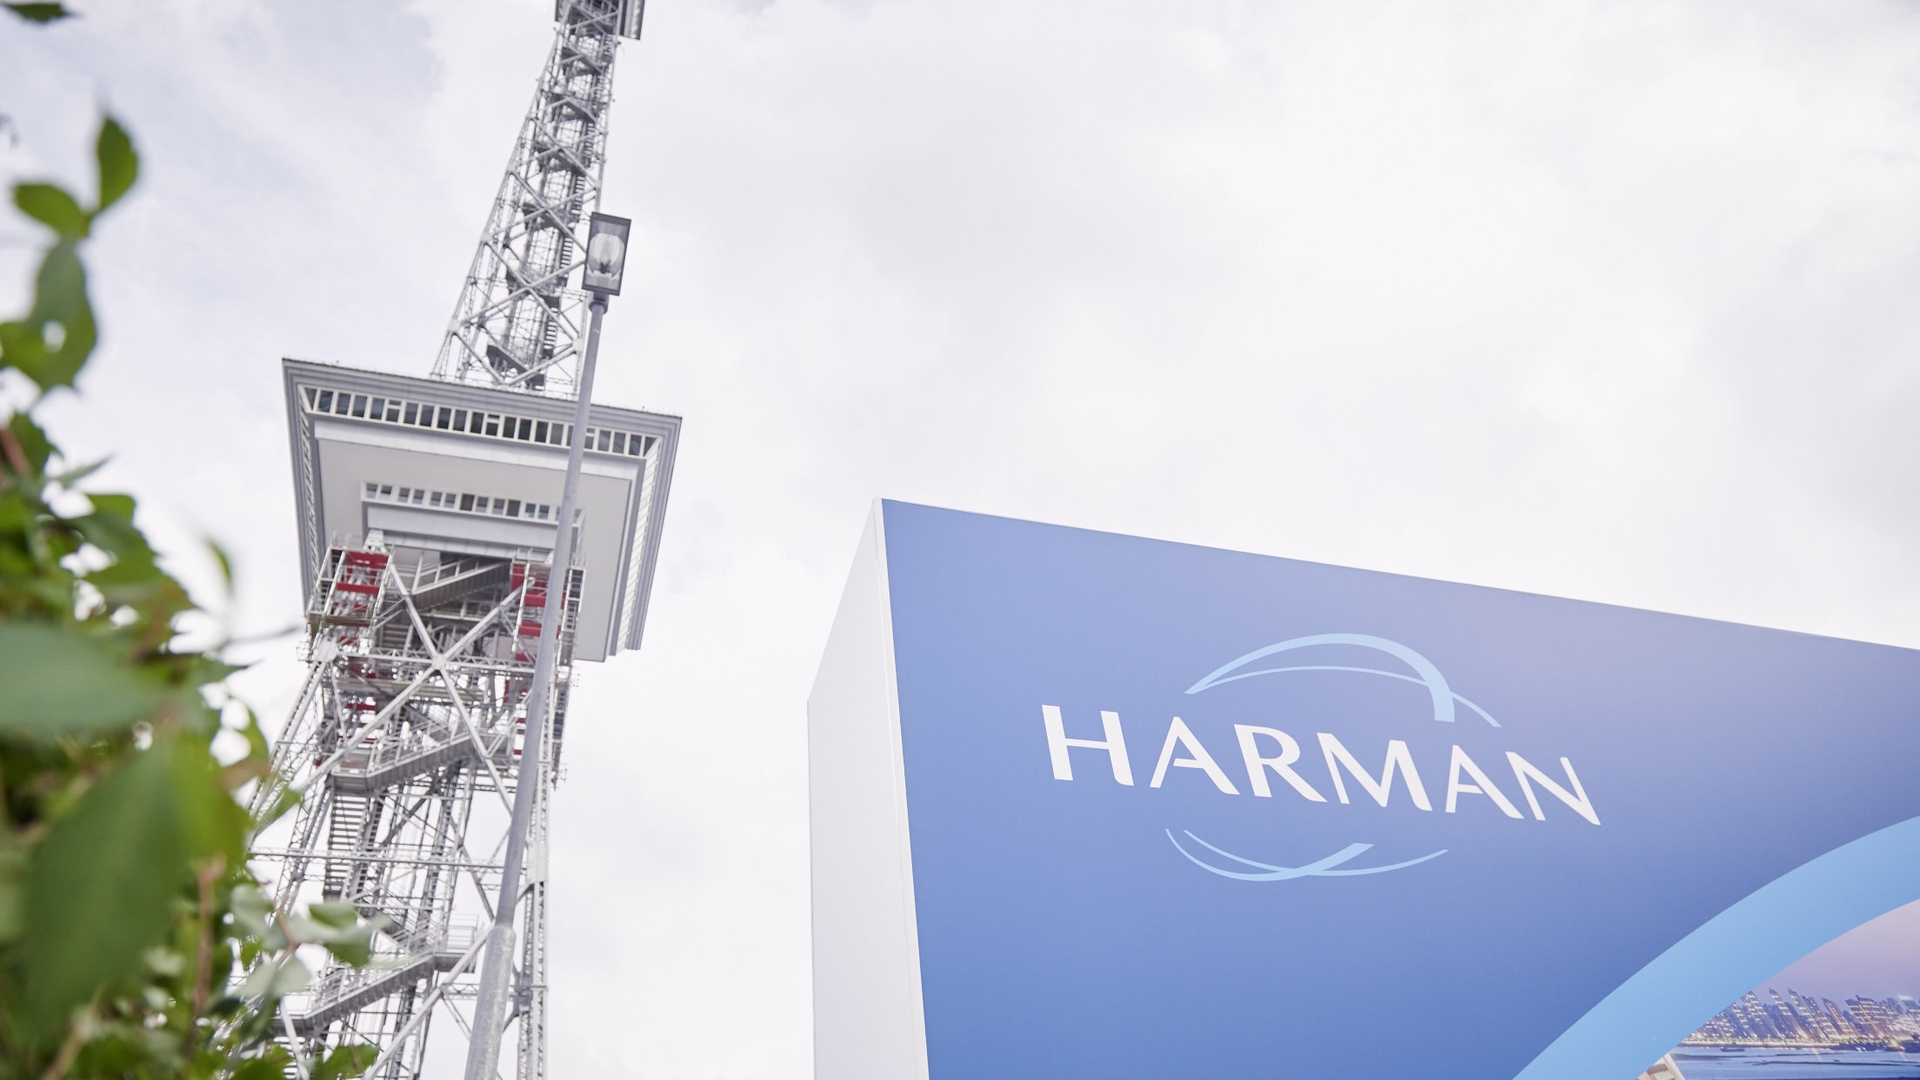 2015 HARMAN at IFA